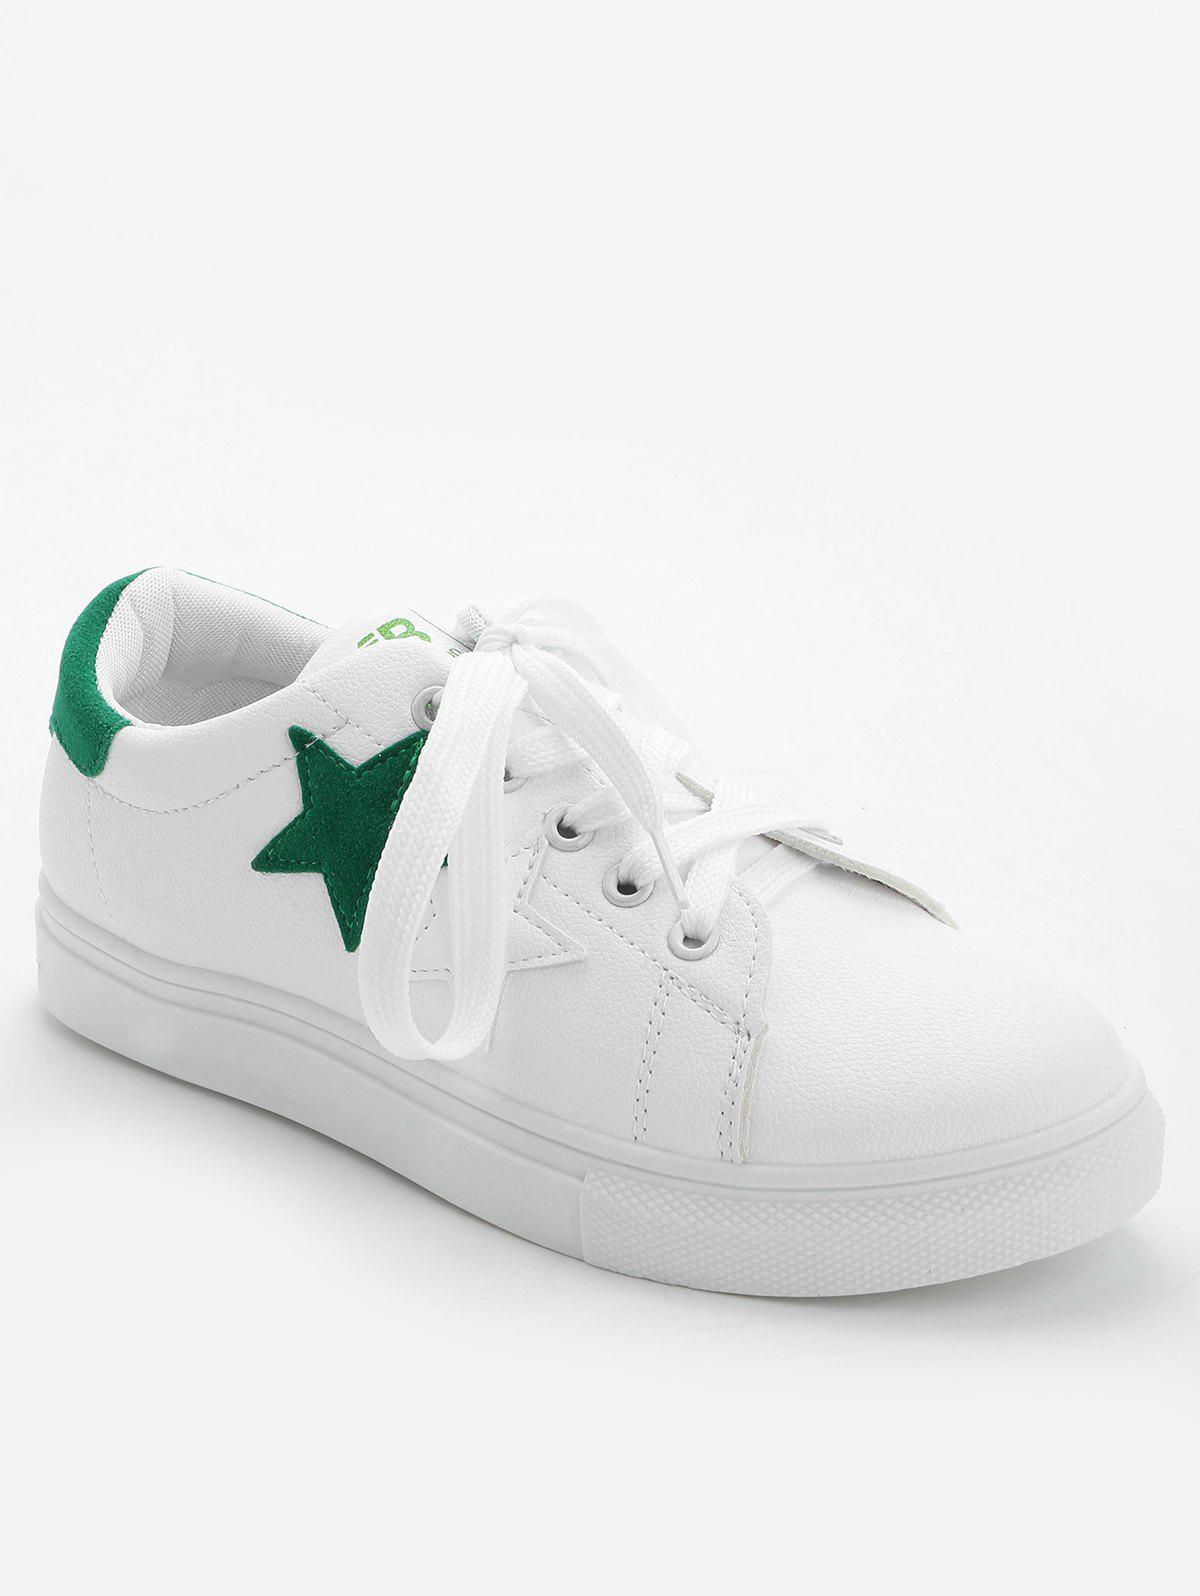 Contrasting Color Pentagram Skate Shoes - GREEN 39